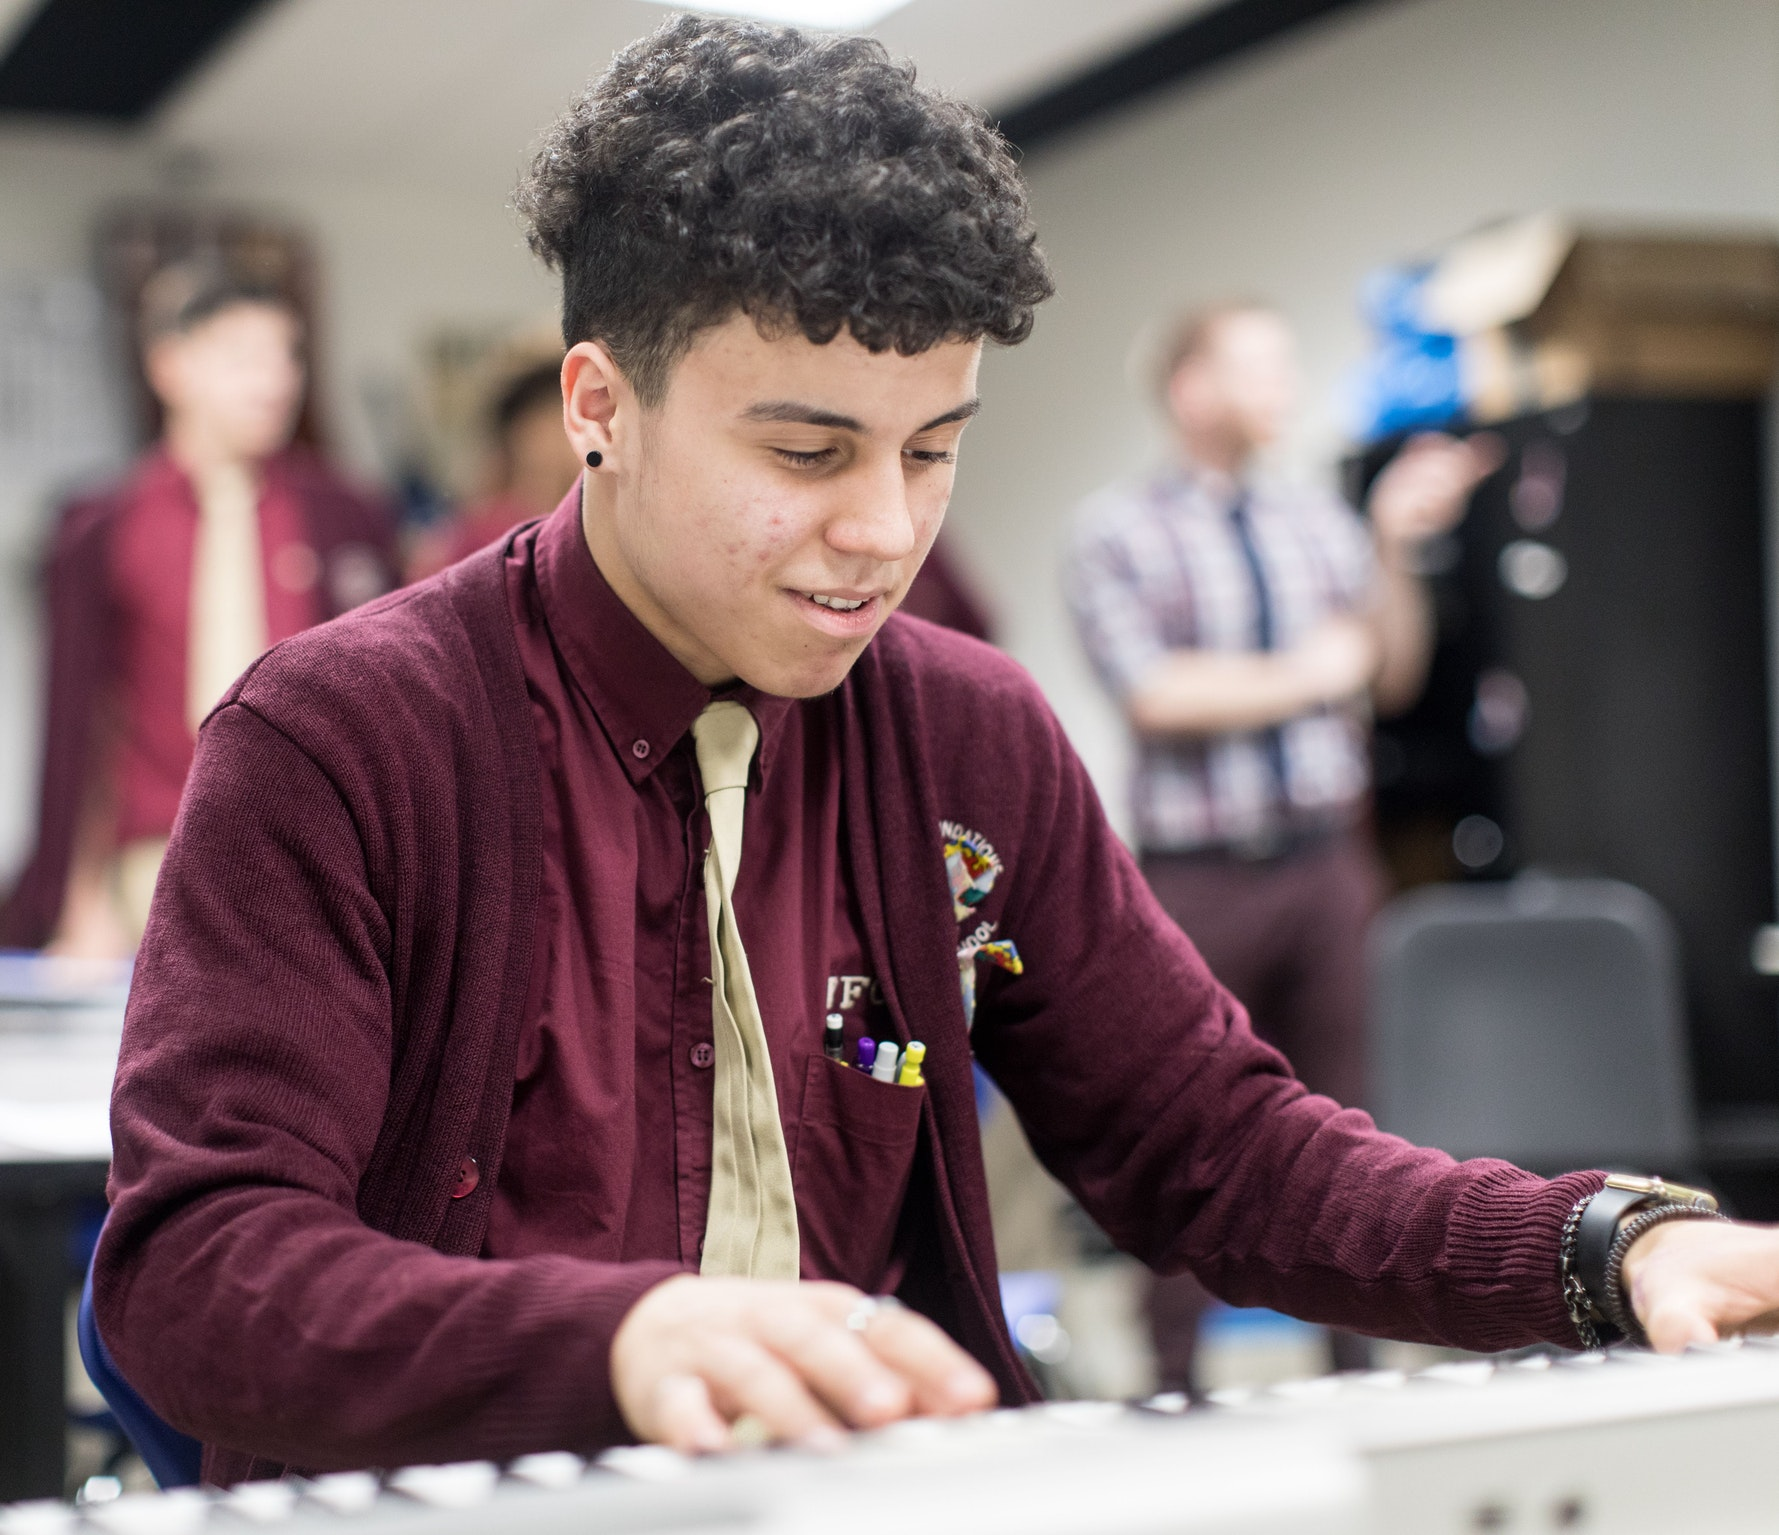 Male high school student plays electric keyboard in music class